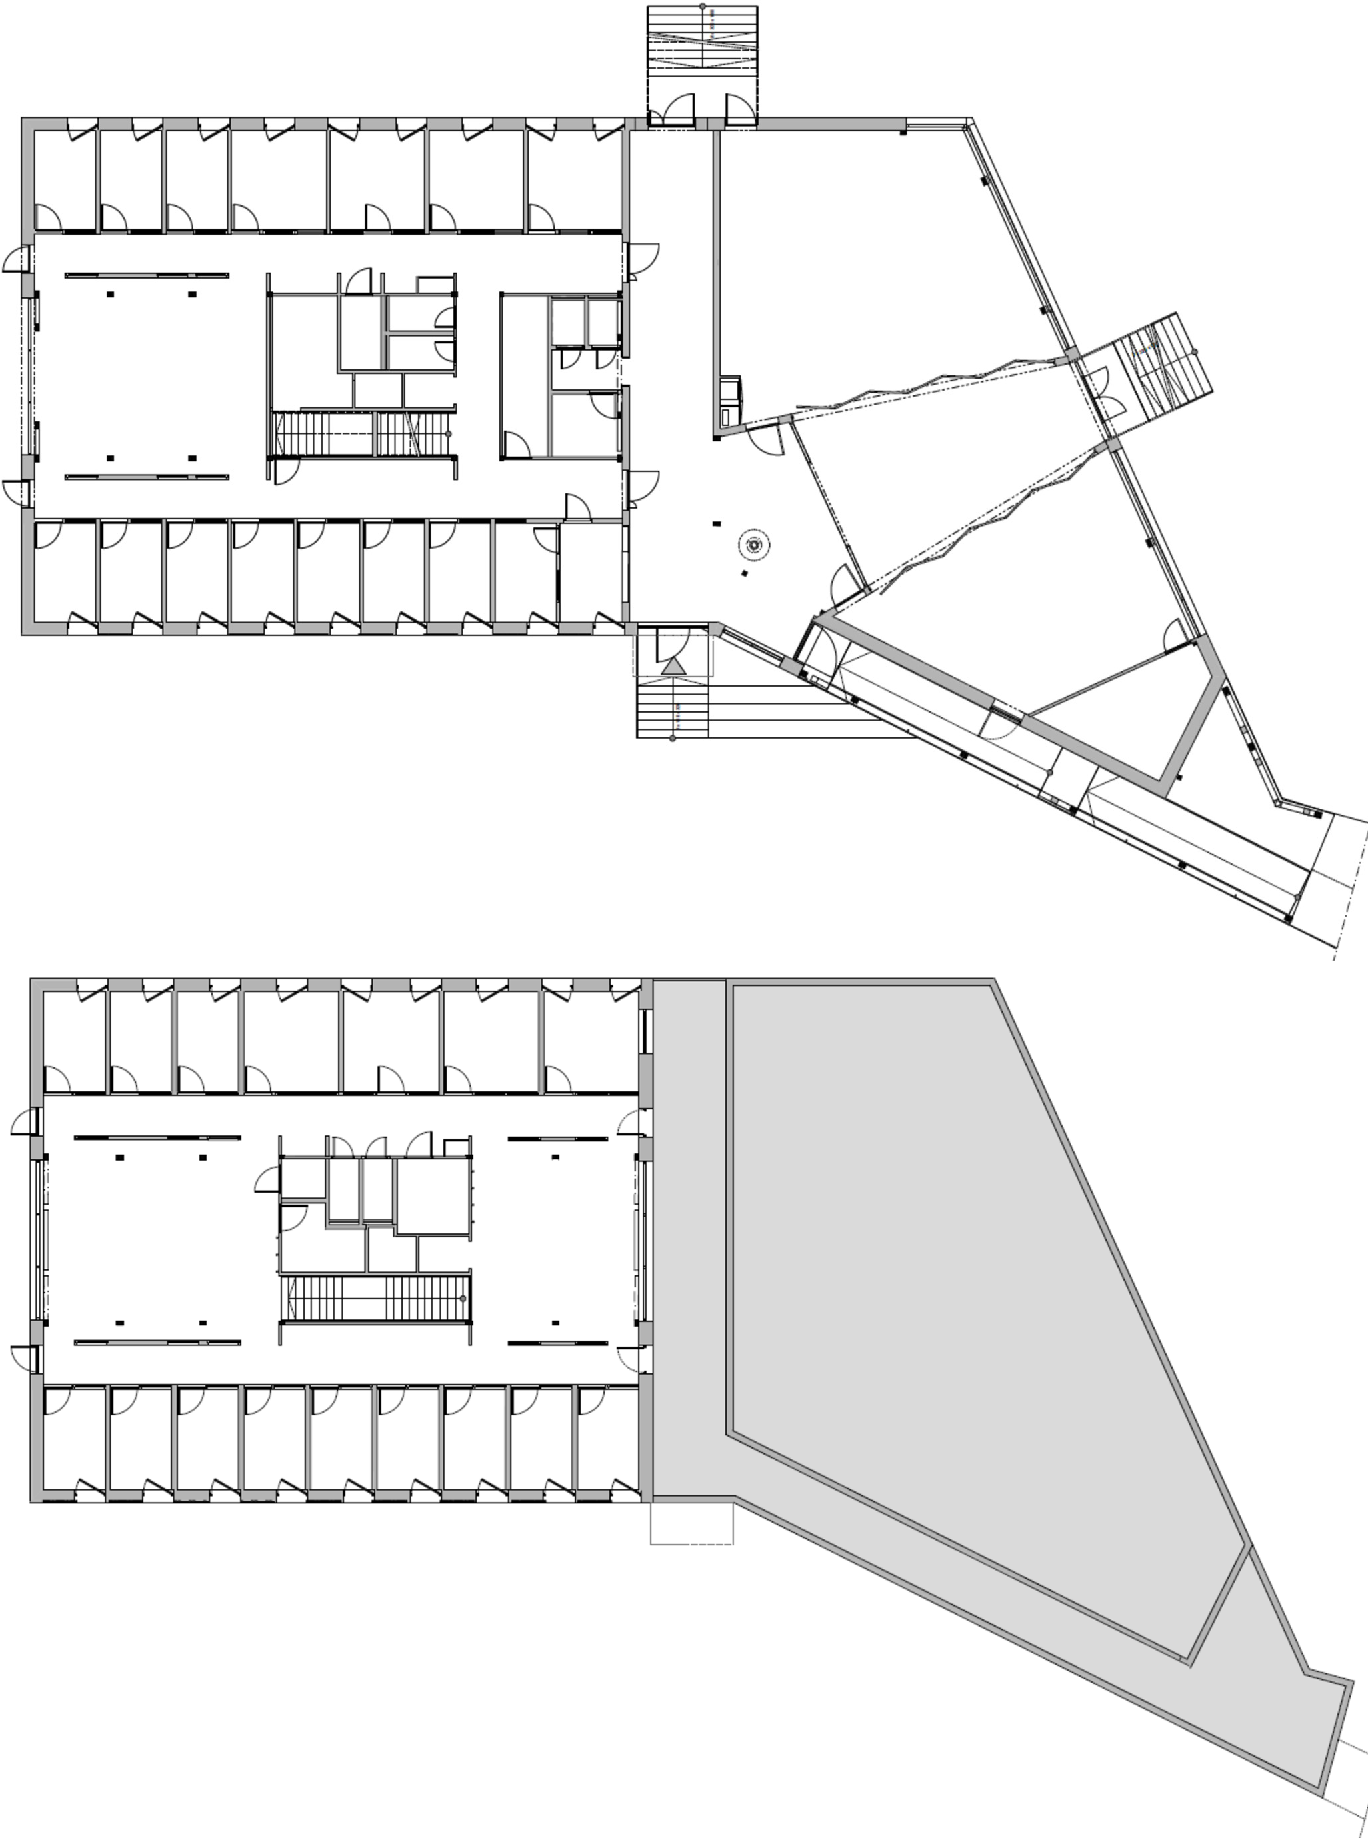 PDF] ZEB Pilot Campus Evenstad. Administration and ... Zeb Pilot House Plans on breaking bad house plans, gilmore girls house plans, space house plans, cardinal house plans, modern house plans, school house plans, jigsaw house plans, blue bloods house plans, smoke house plans, manhattan house plans, hawaii house plans, six feet under house plans, family house plans, american horror story house plans, 3-dimensional house plans, sunday house plans, cook house plans, house house plans, new york house plans,